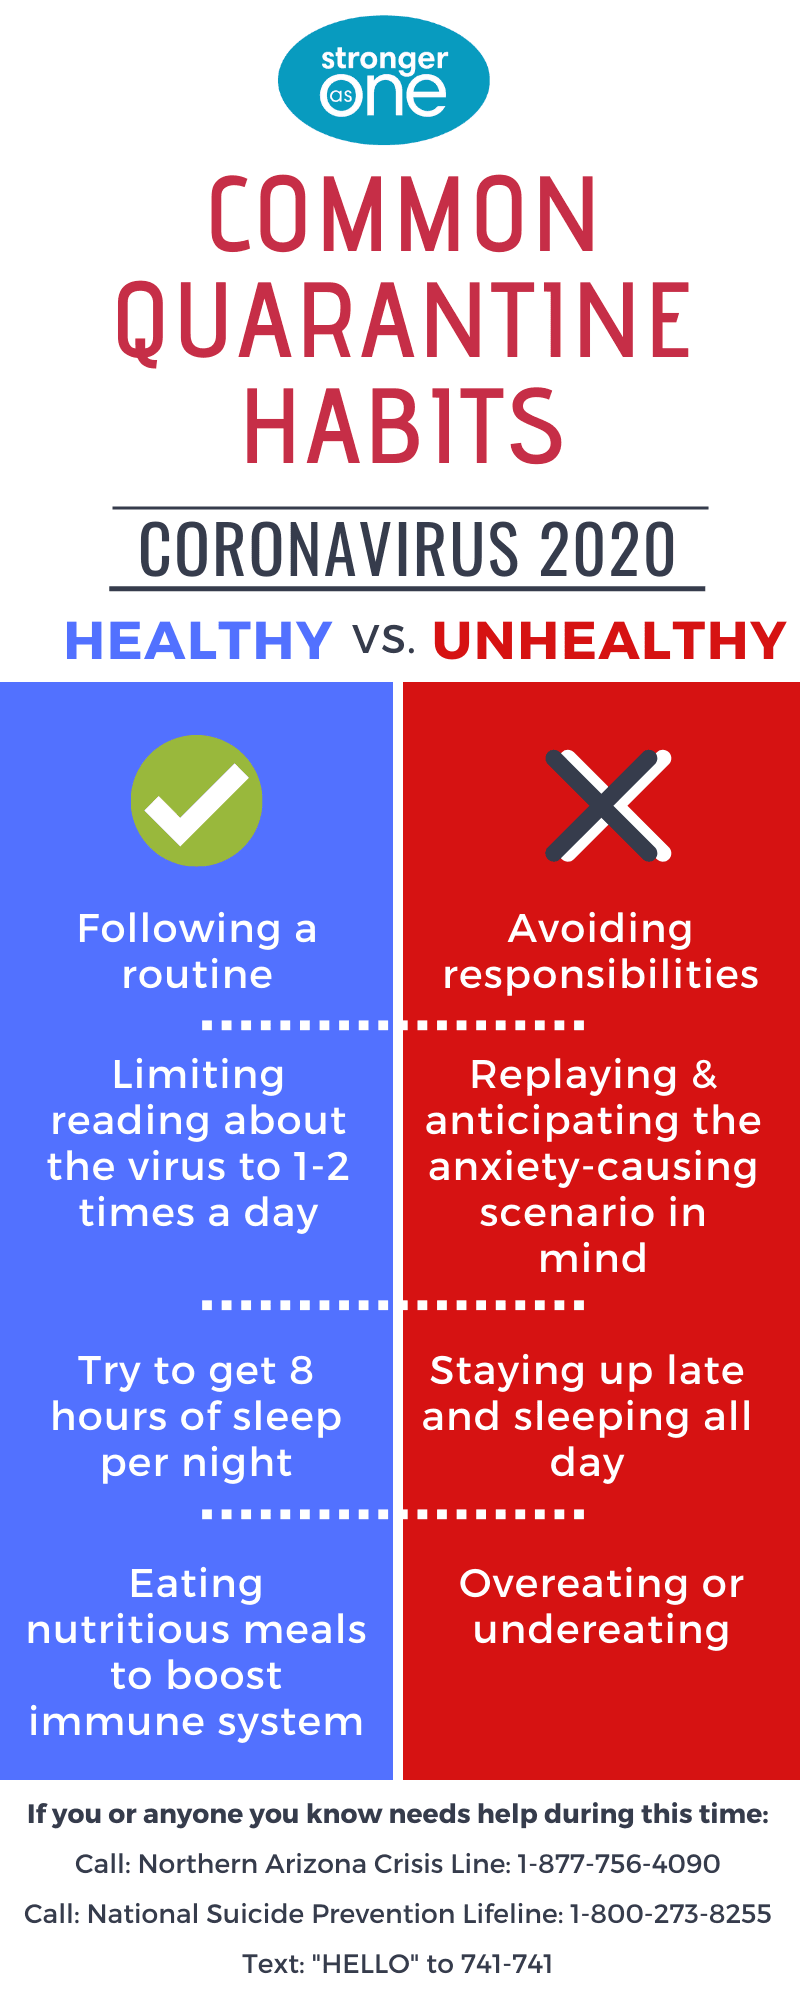 SAO Healthy vs Unhealthy